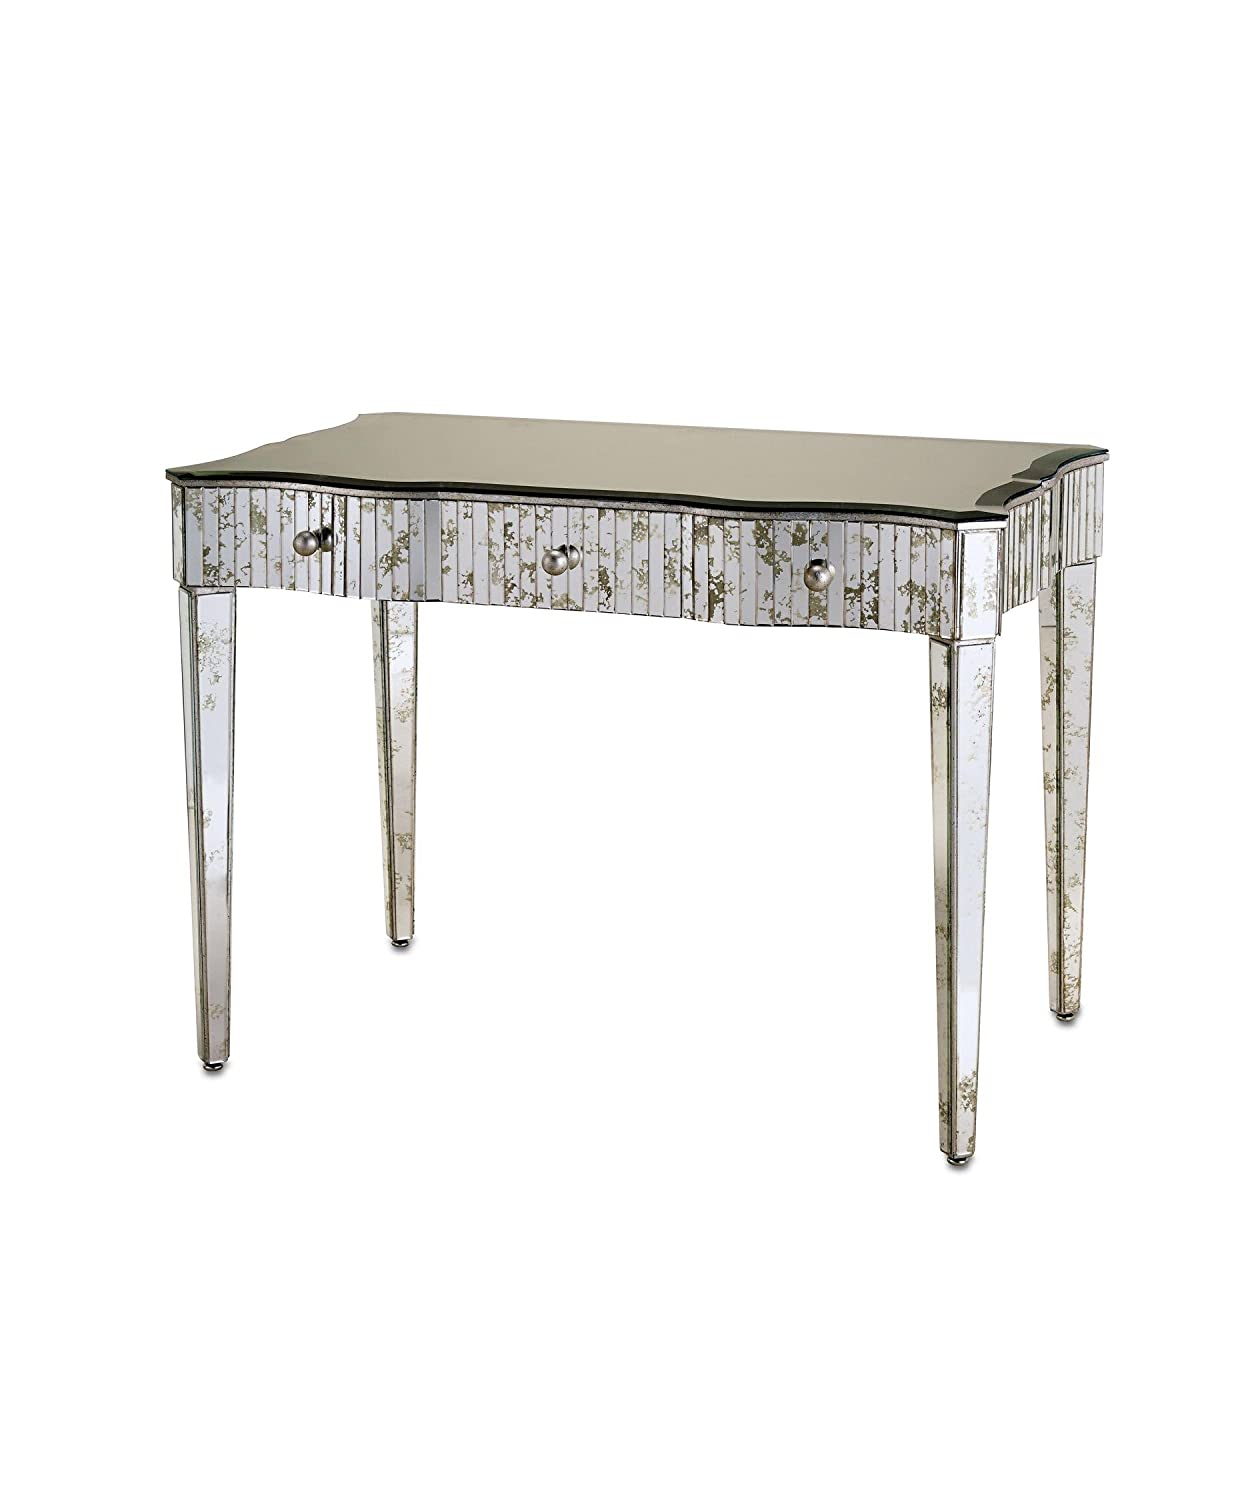 Currey and Company 4004 Gilda Console Table in Granello Silver Leaf-Light